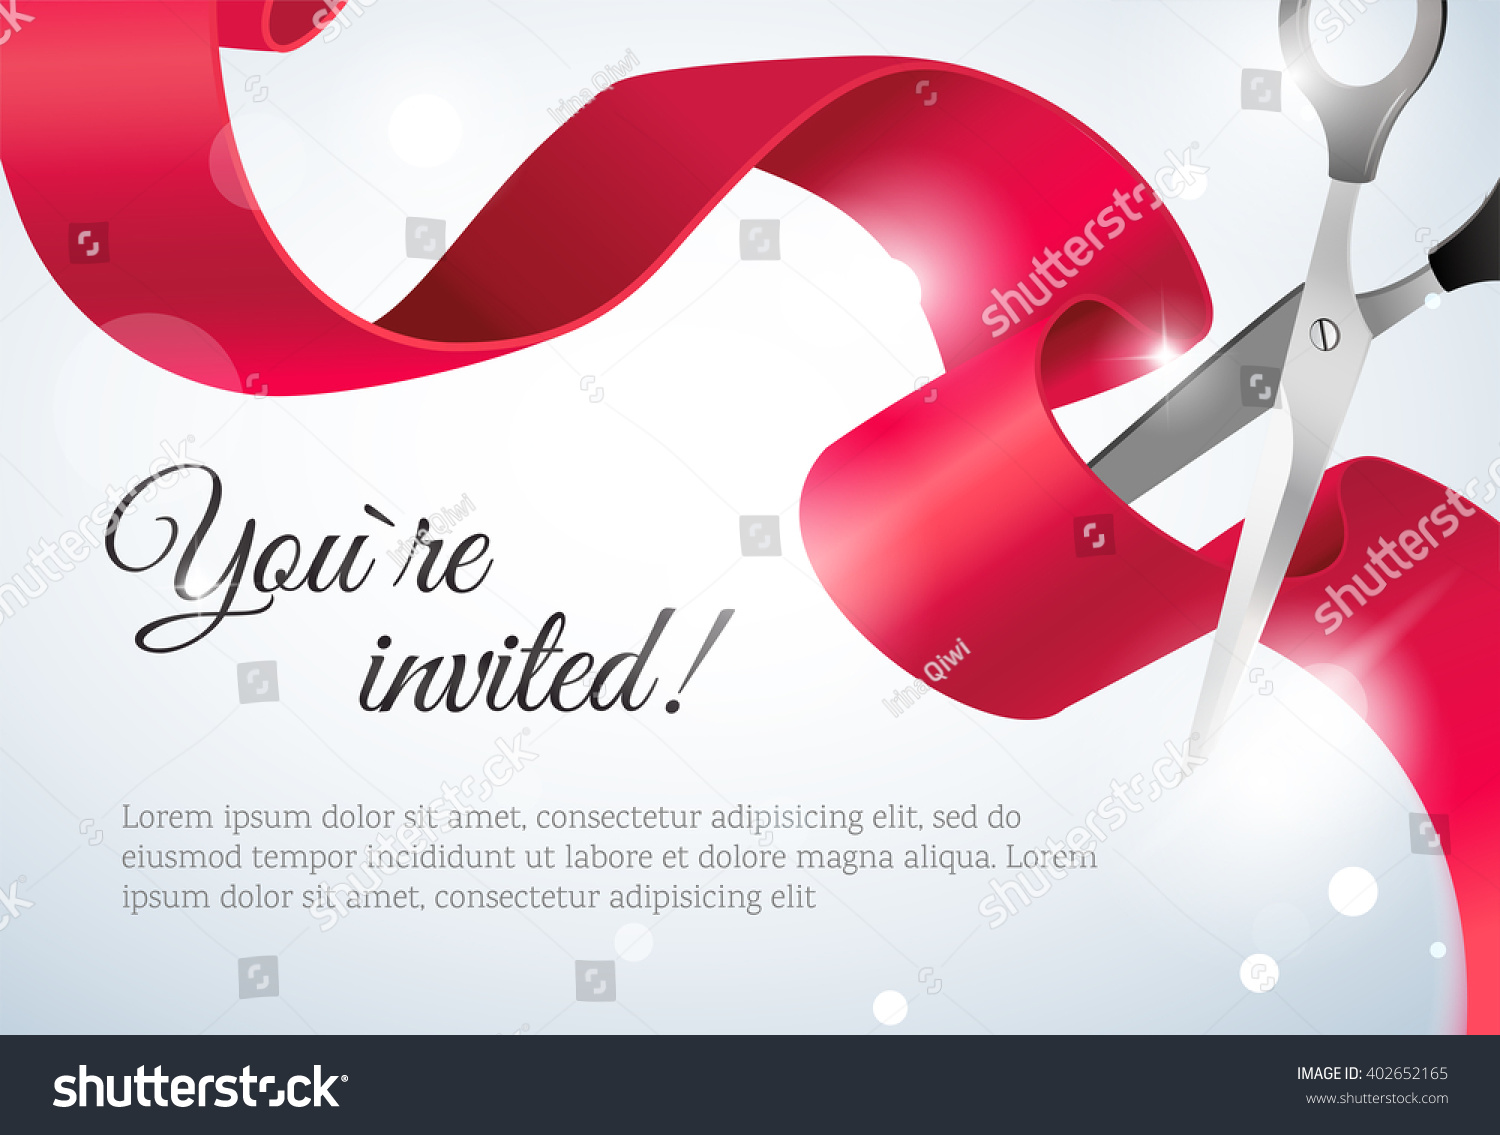 Housewarming Invitation Background is best invitations example